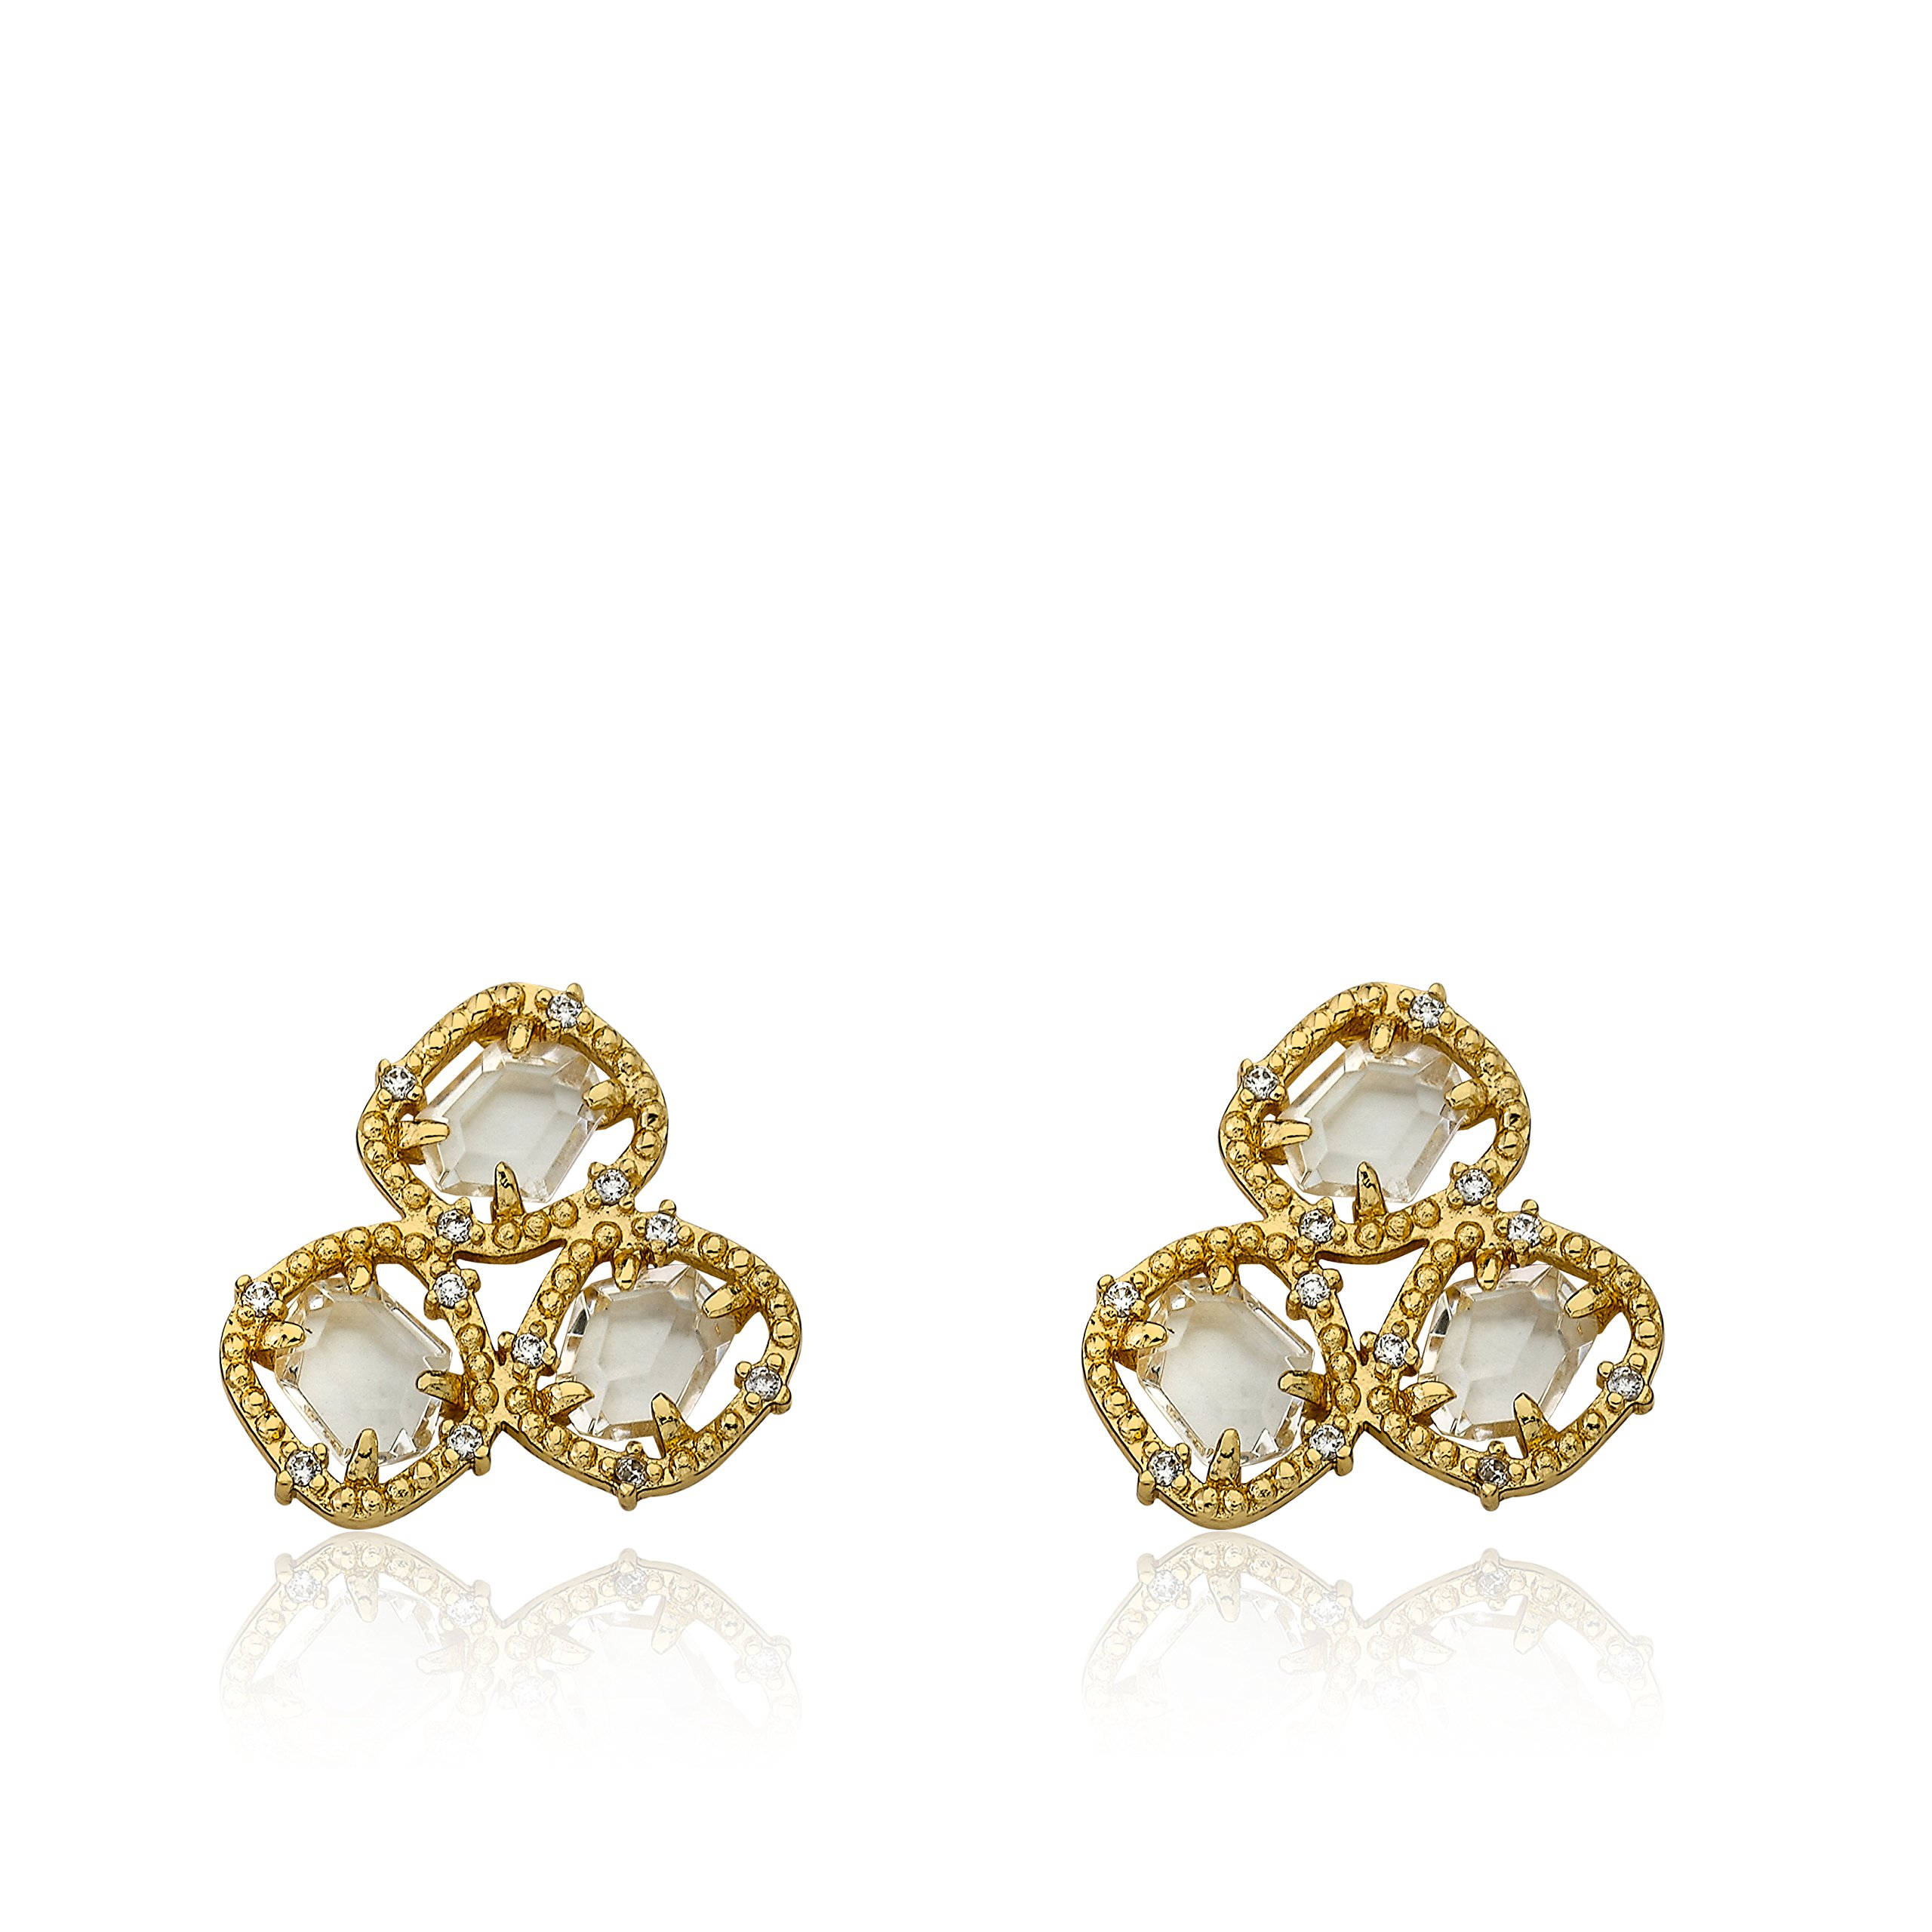 Riccova Sliced Glass 14k Gold-Plated CZ Around Clear Sliced Glass Stud Earring/ by Riccova